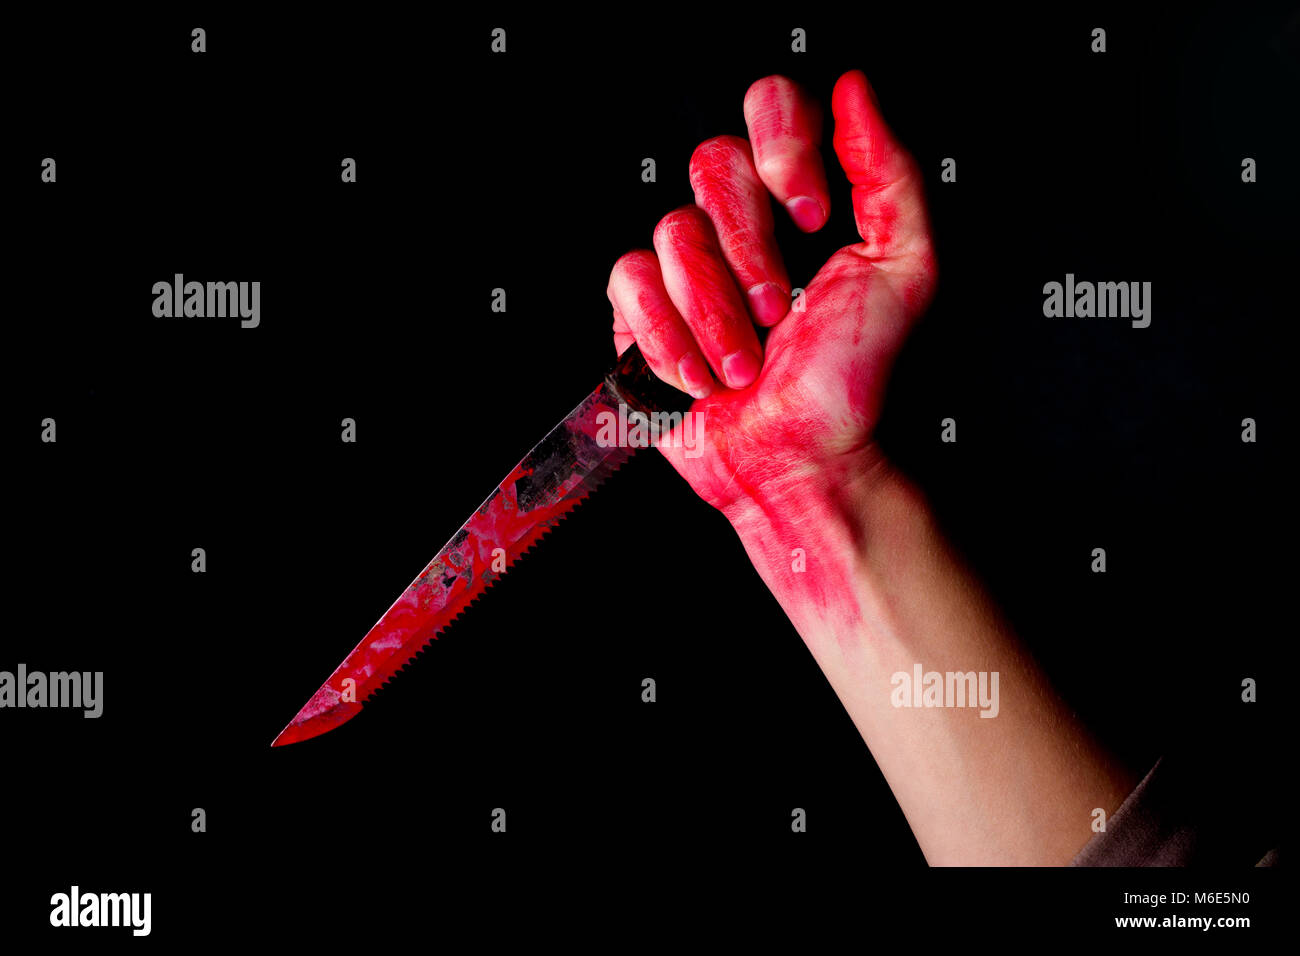 e057a7994760 Horror Blood Stock Photos & Horror Blood Stock Images - Alamy